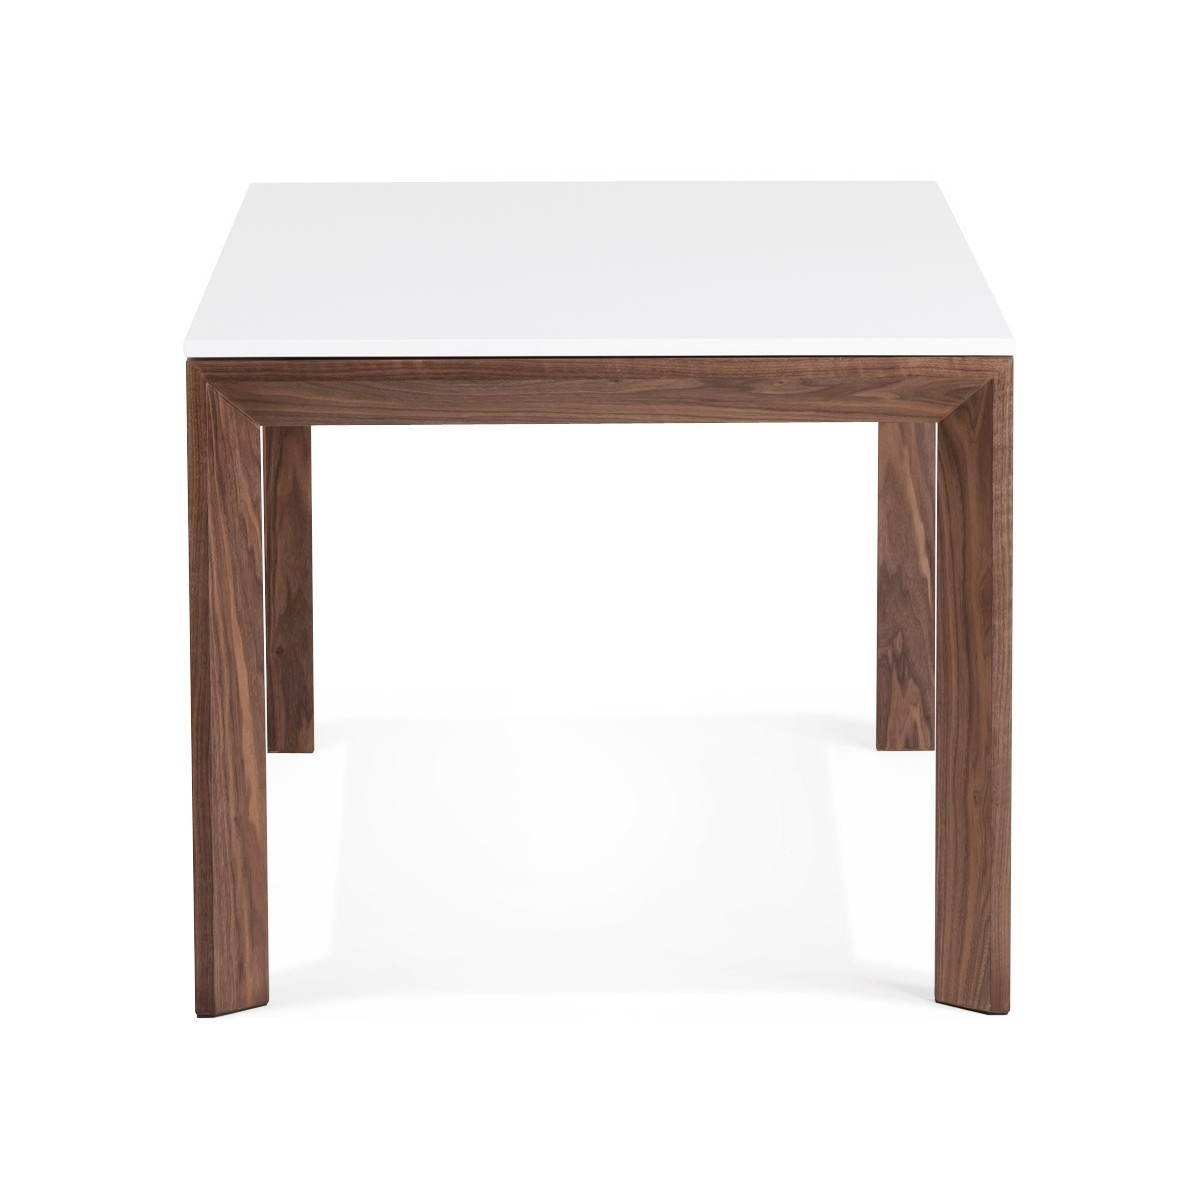 Table design rectangulaire avec rallonge loulou en bois - Table massif rallonge ...